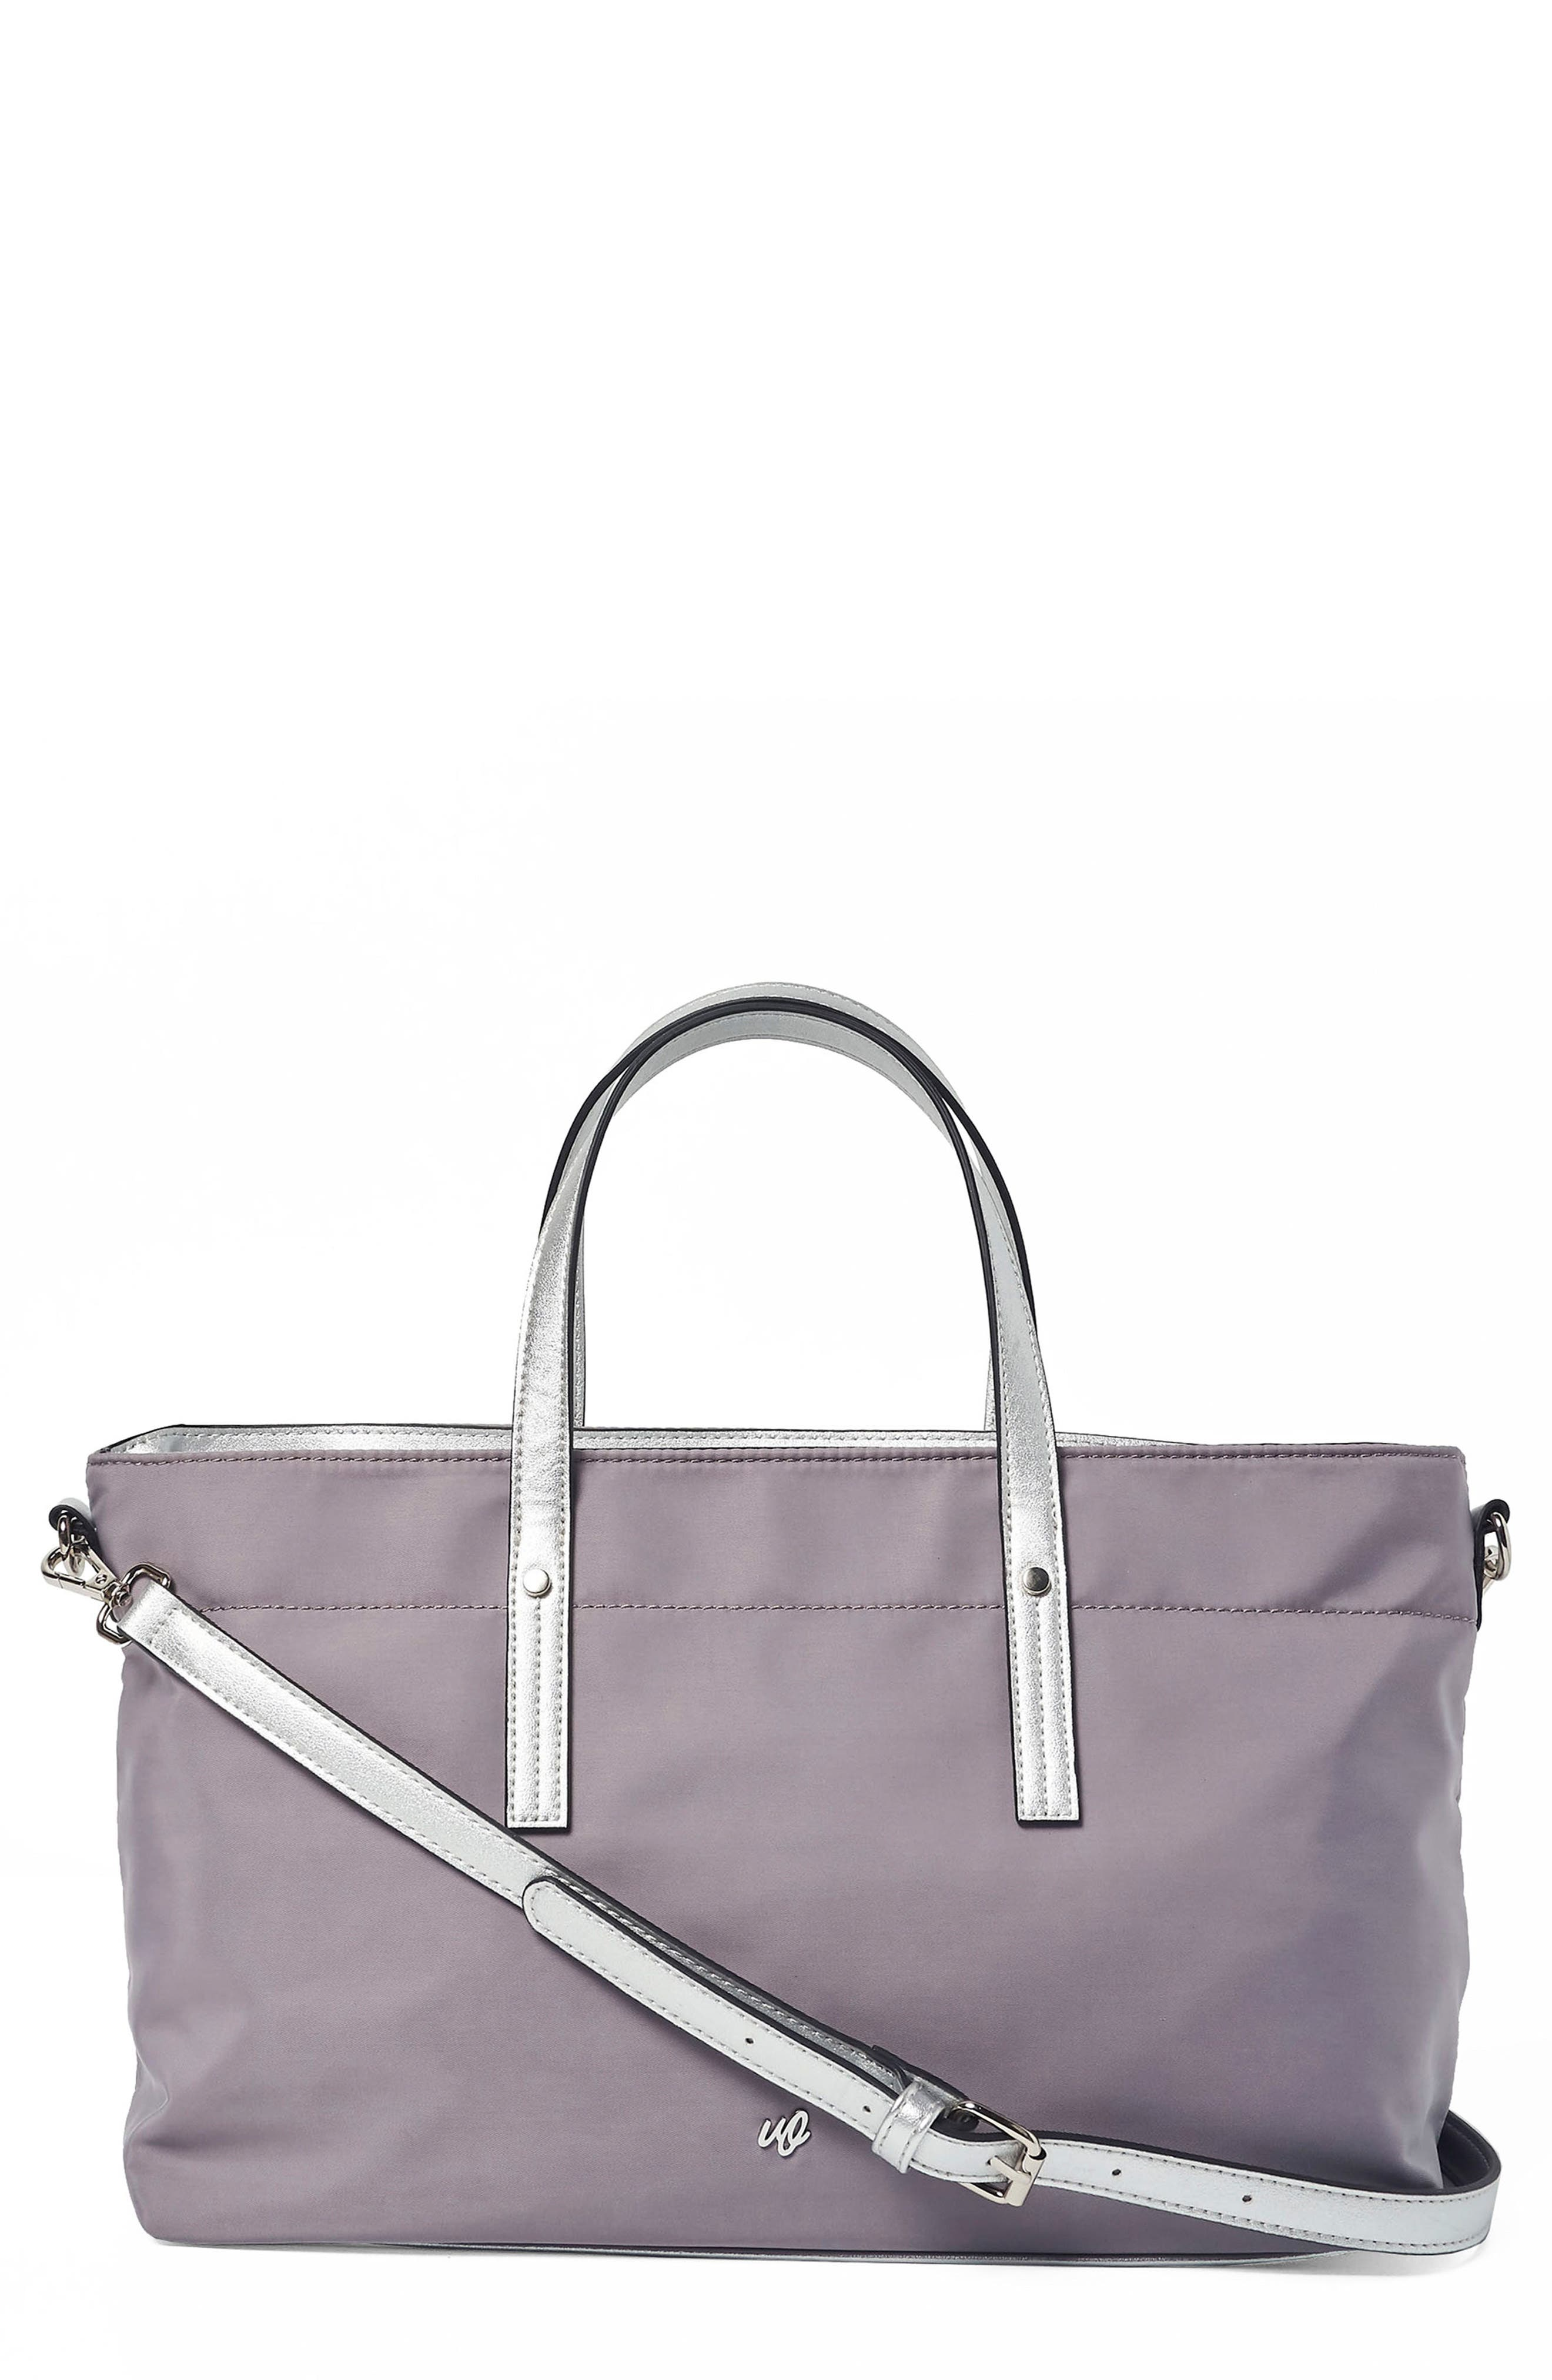 SUPERSTAR NYLON TOTE - GREY